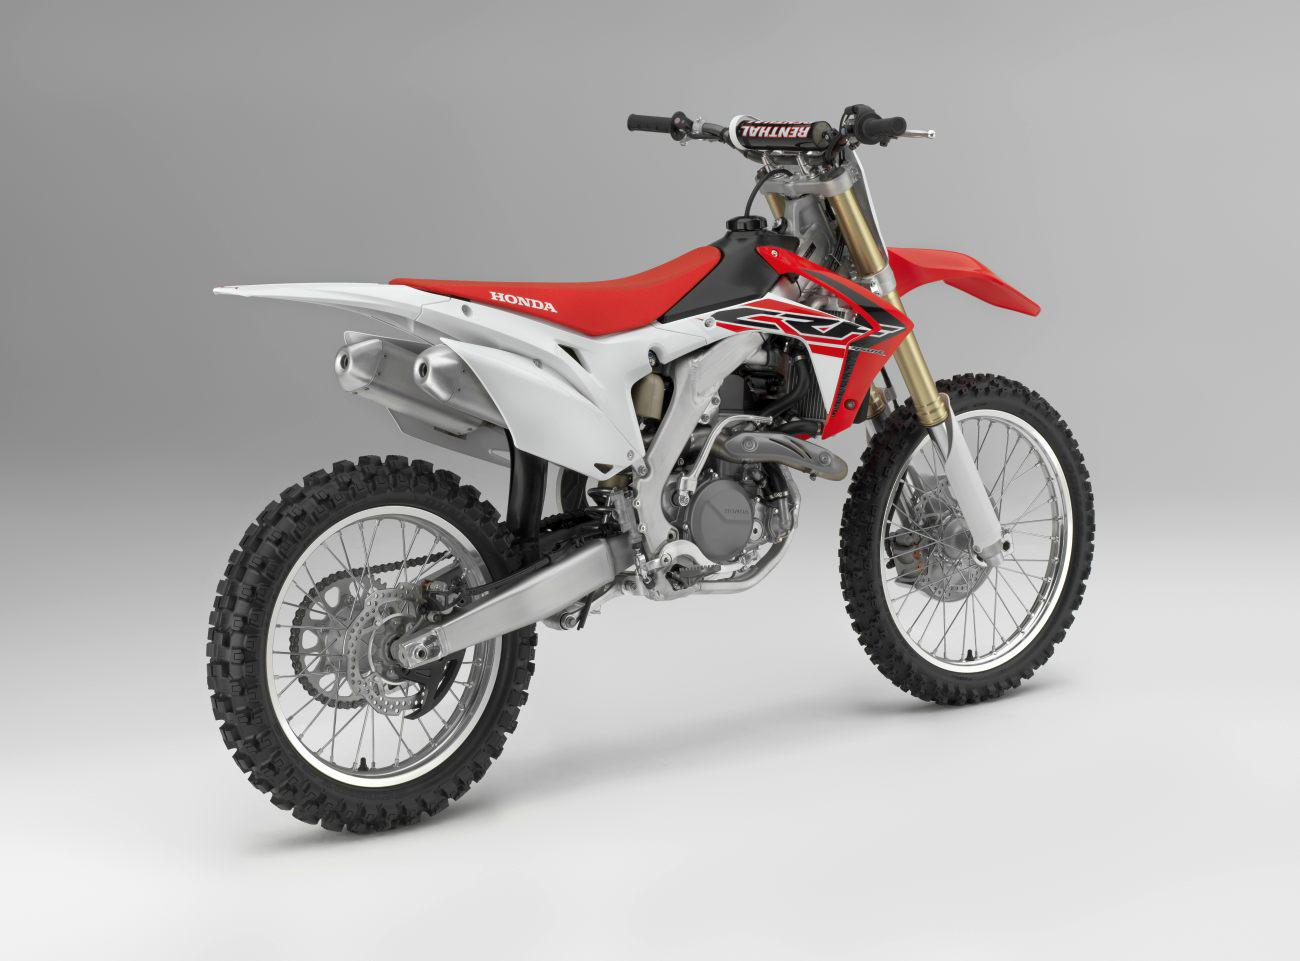 Yamaha Trail Bikes For Sale Uk